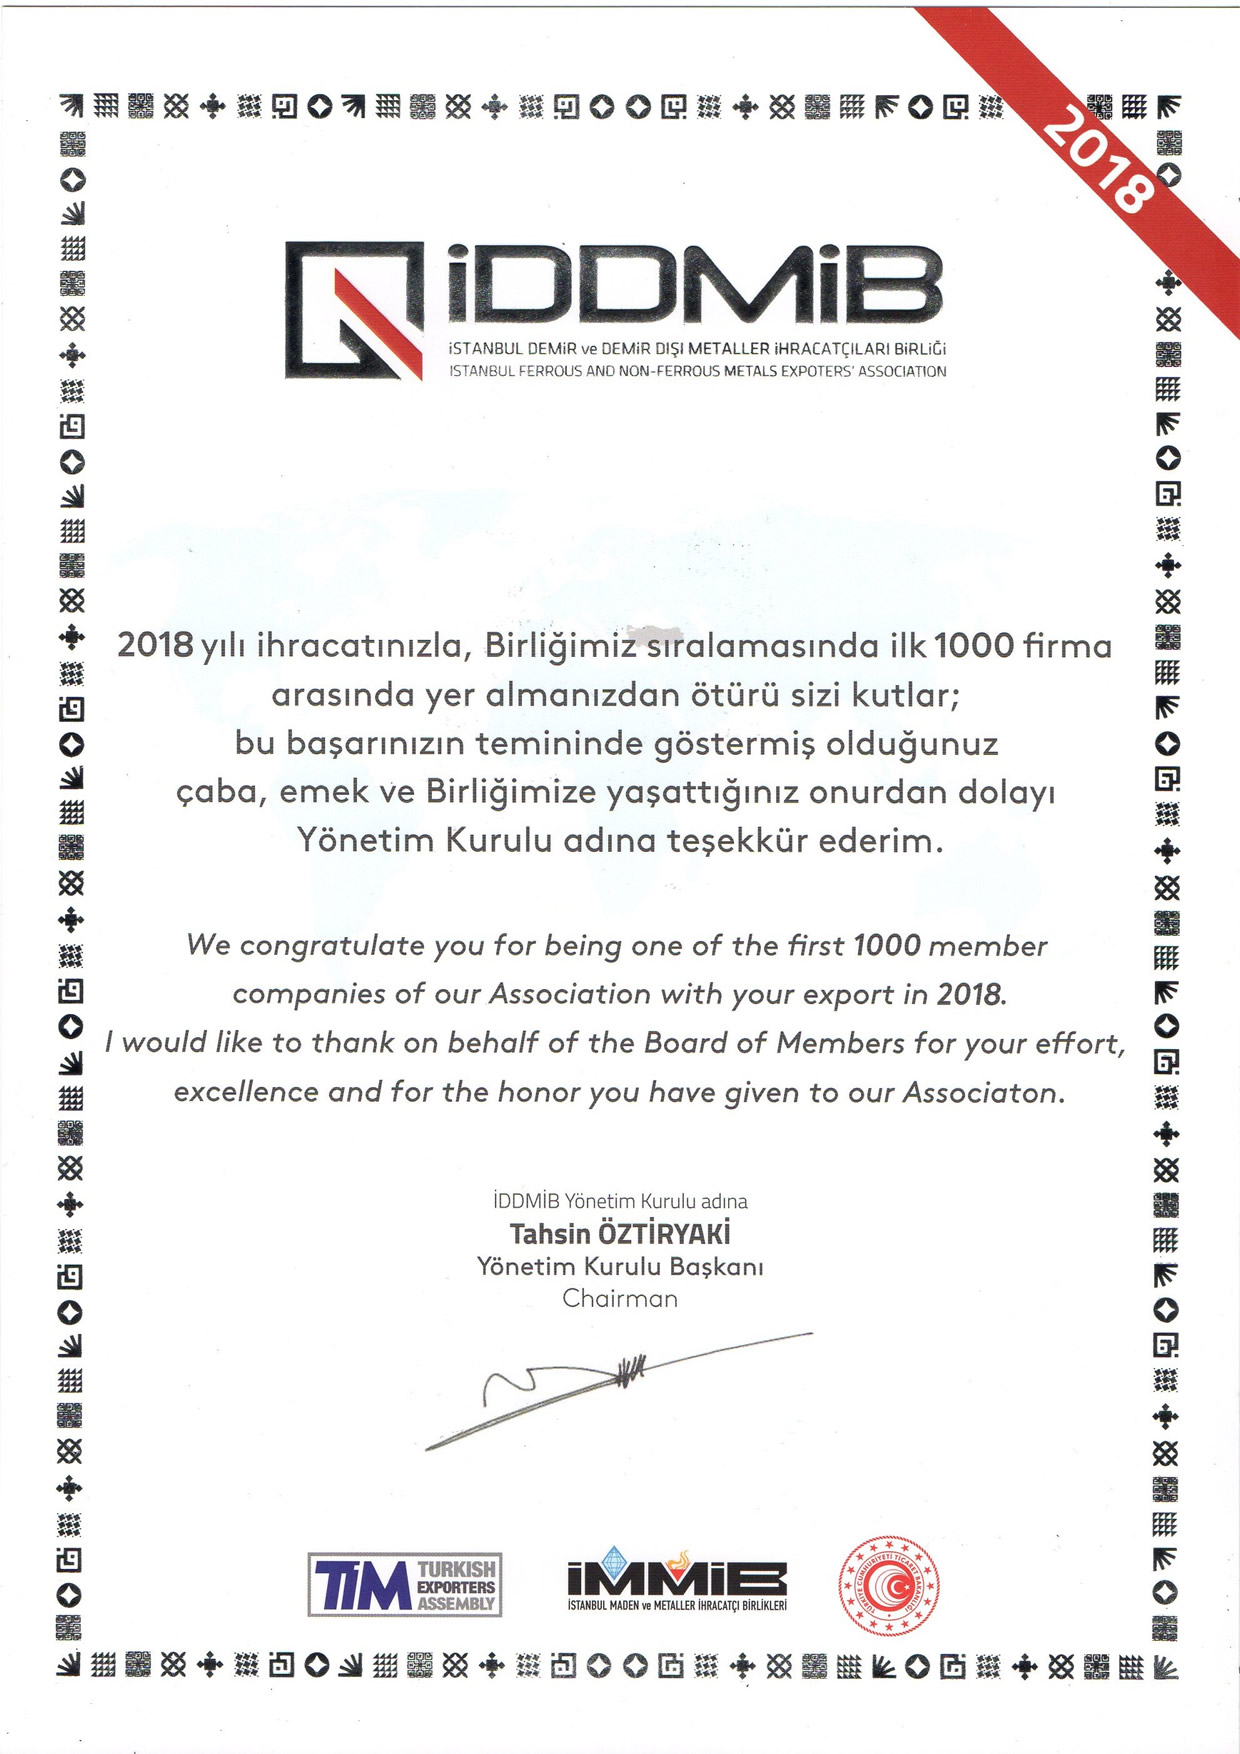 Listed in 1000 Exporters in İMMİB – Donau